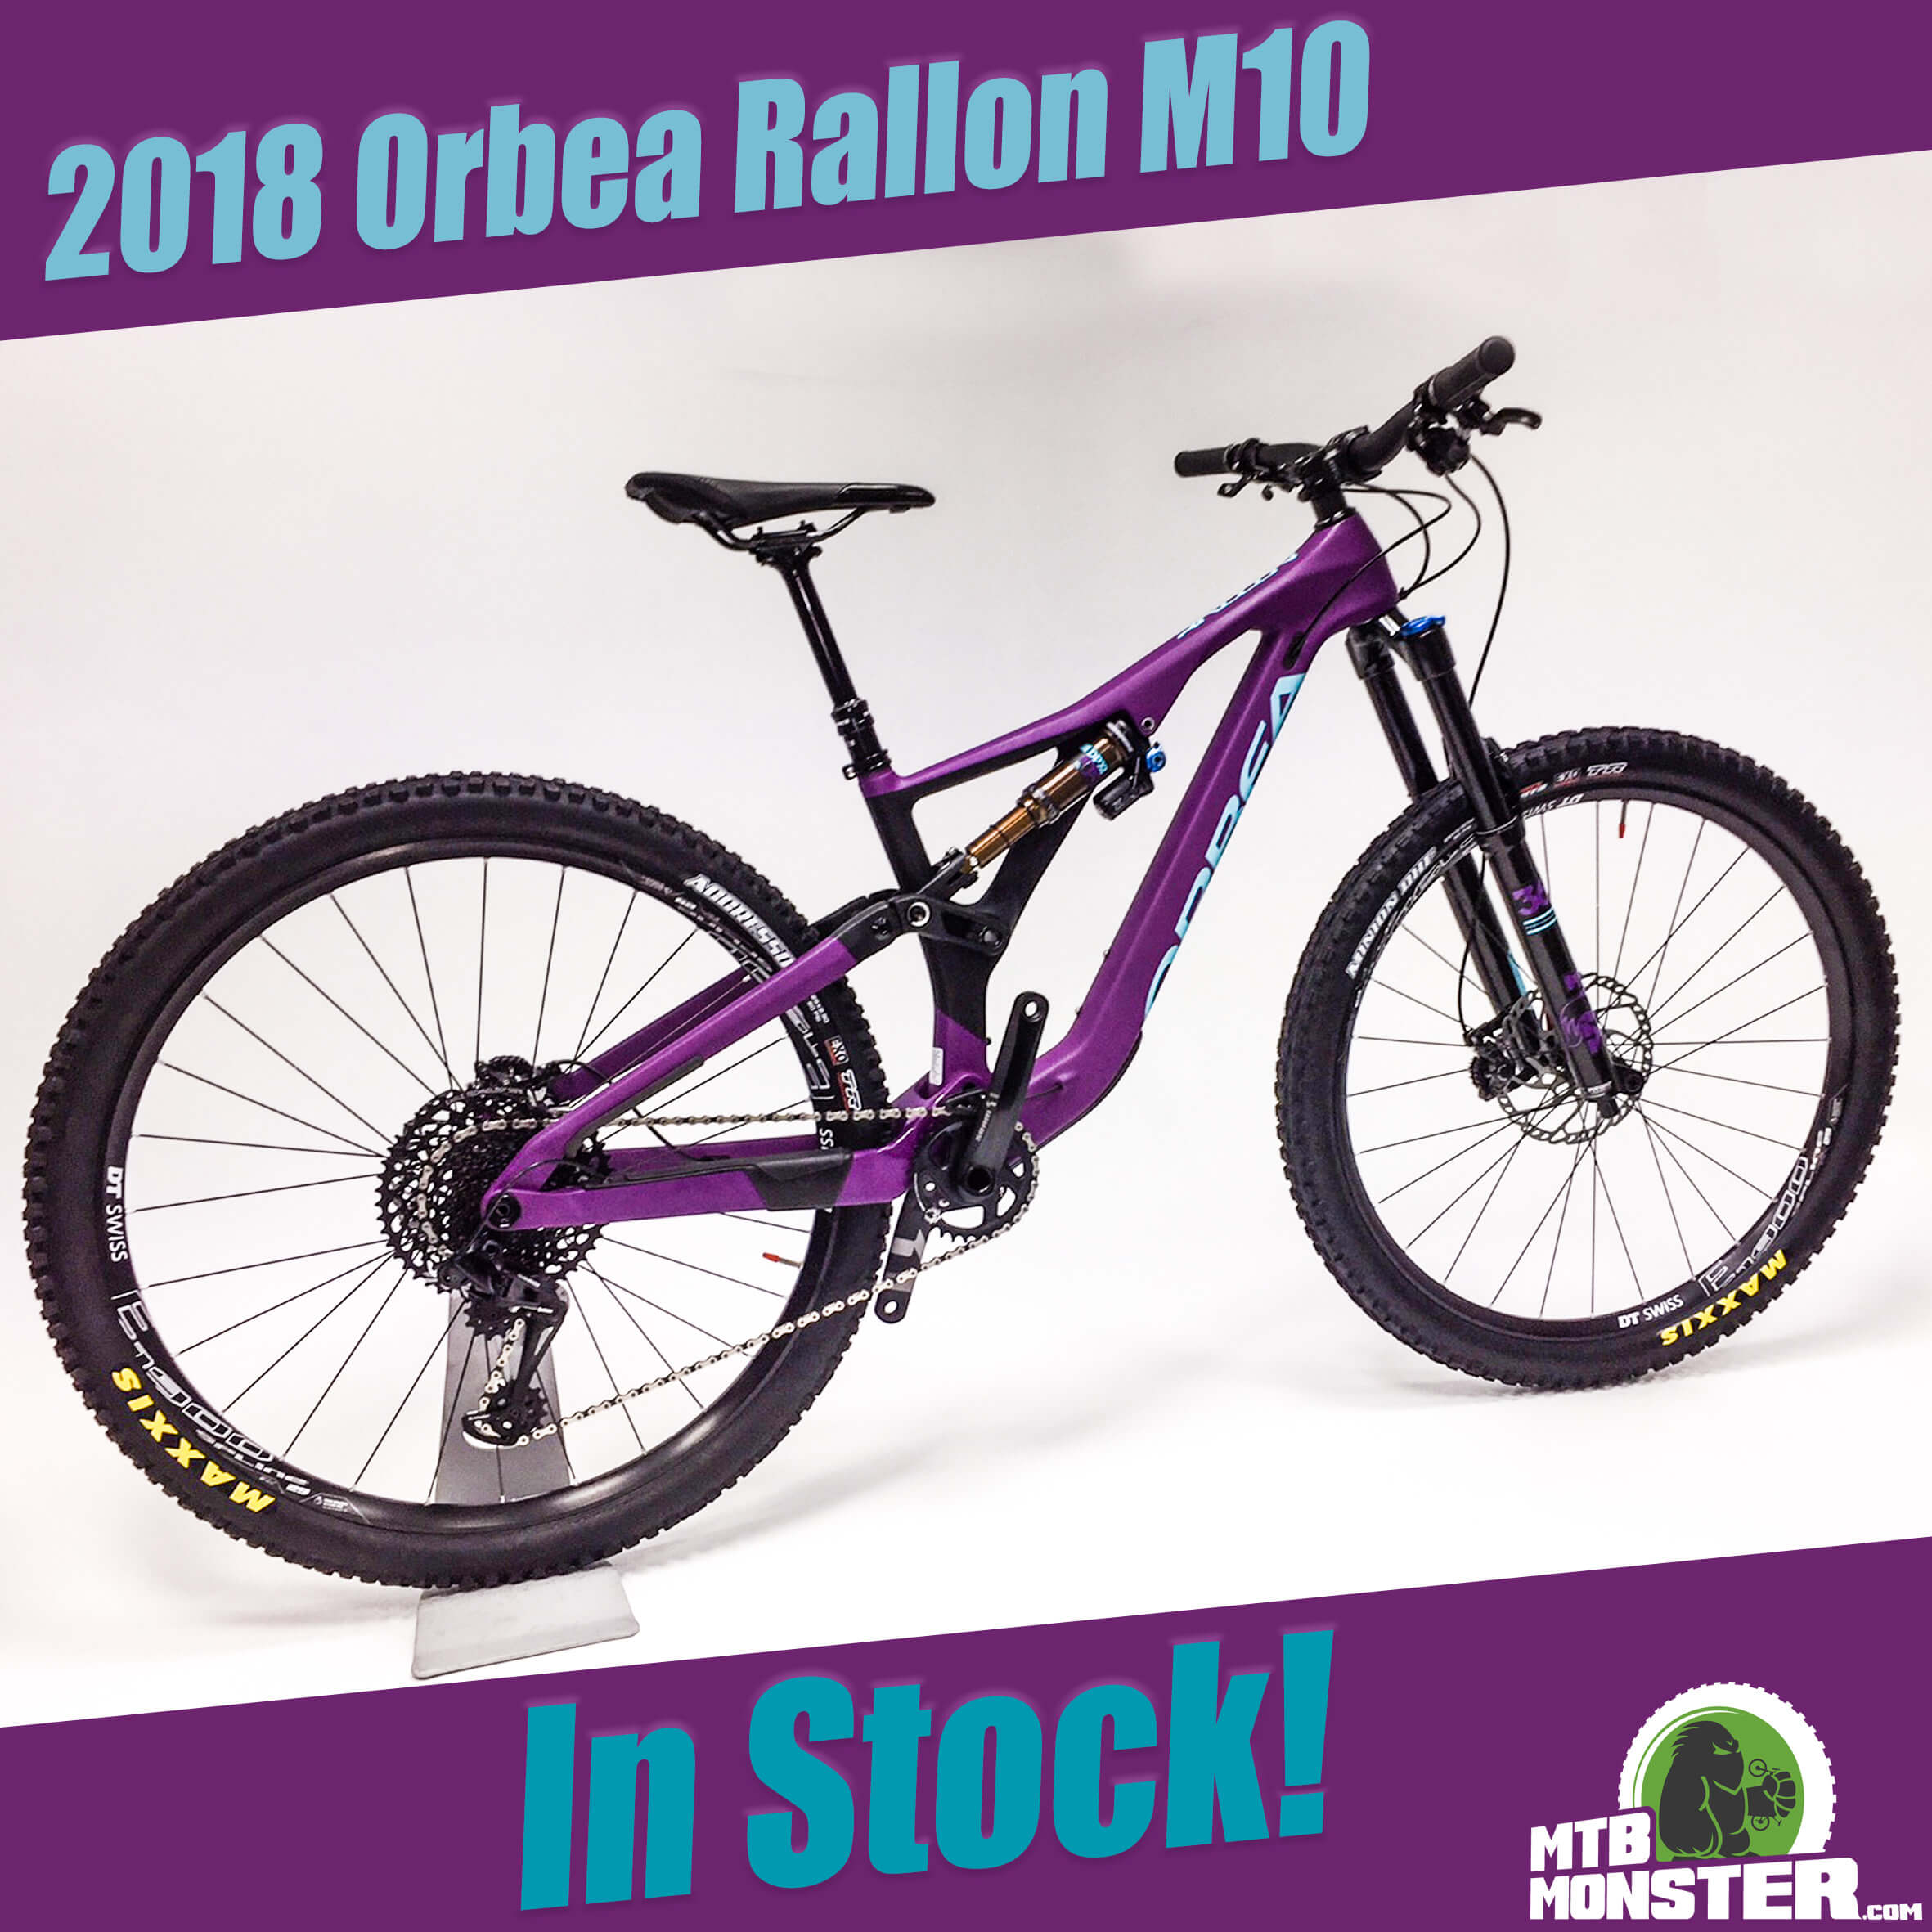 2018 Orbea Bikes Rallon M10 - In Stock Now! - MTB Monster c7e4b0875